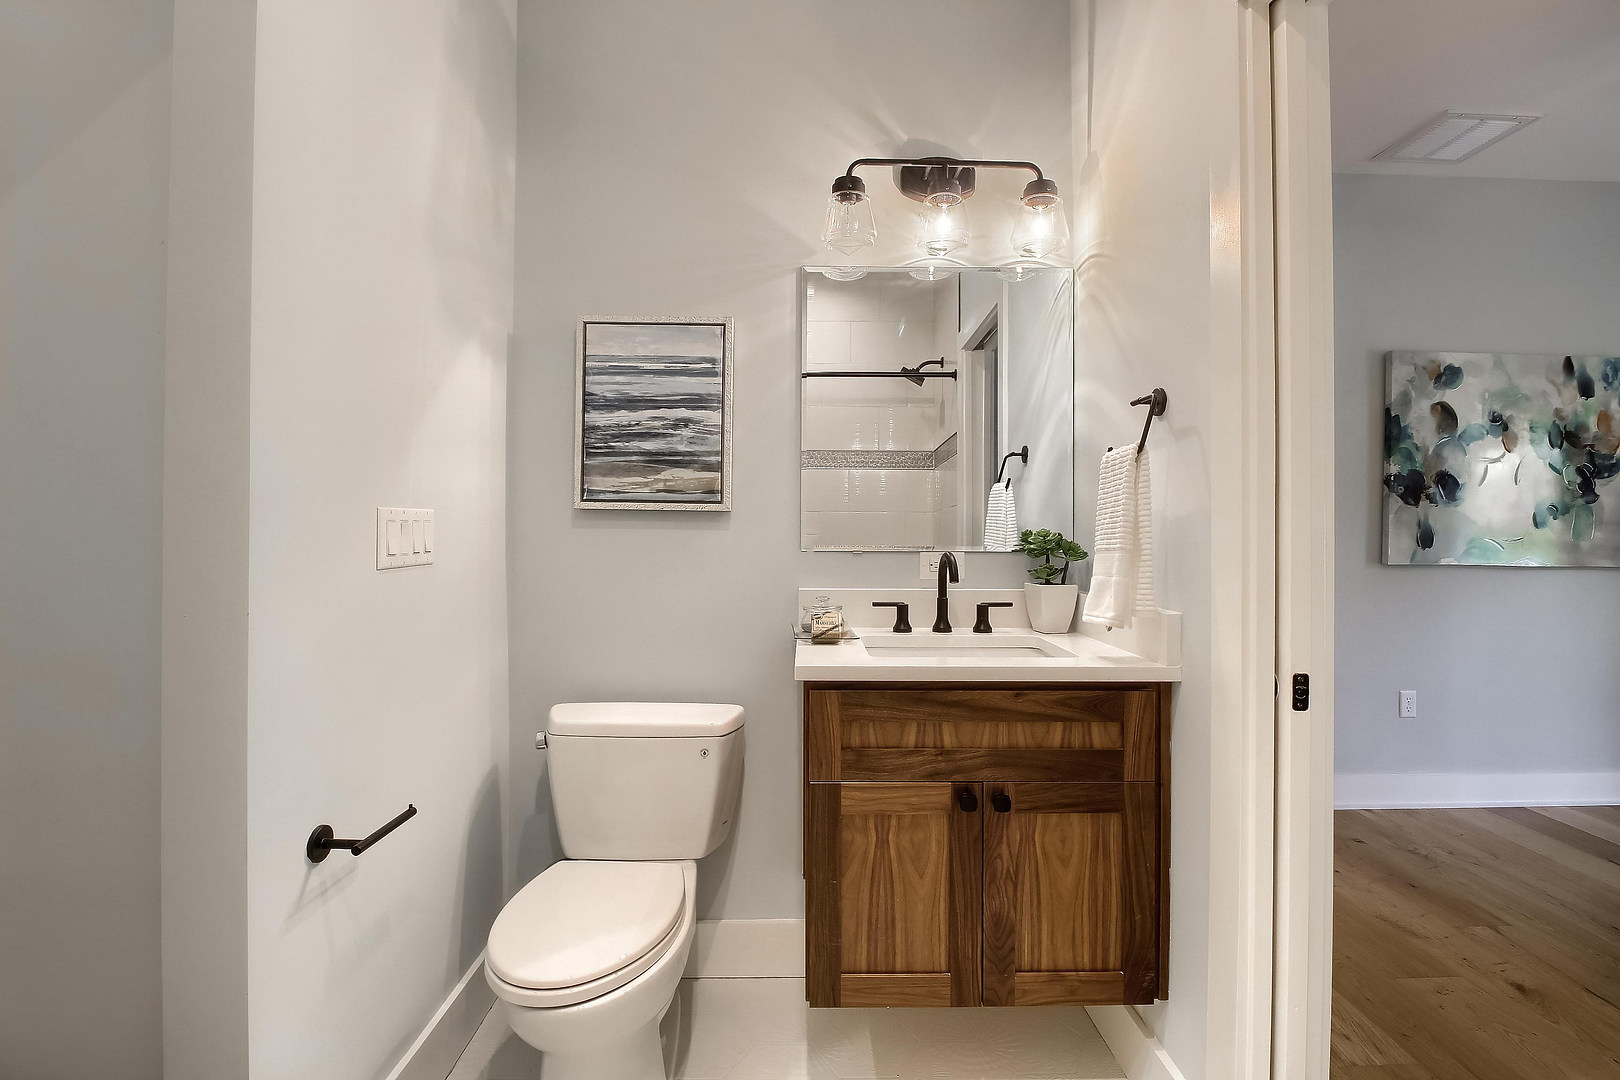 Home Renovation Bathroom Floating Sink on West 29th in Austin, Texas